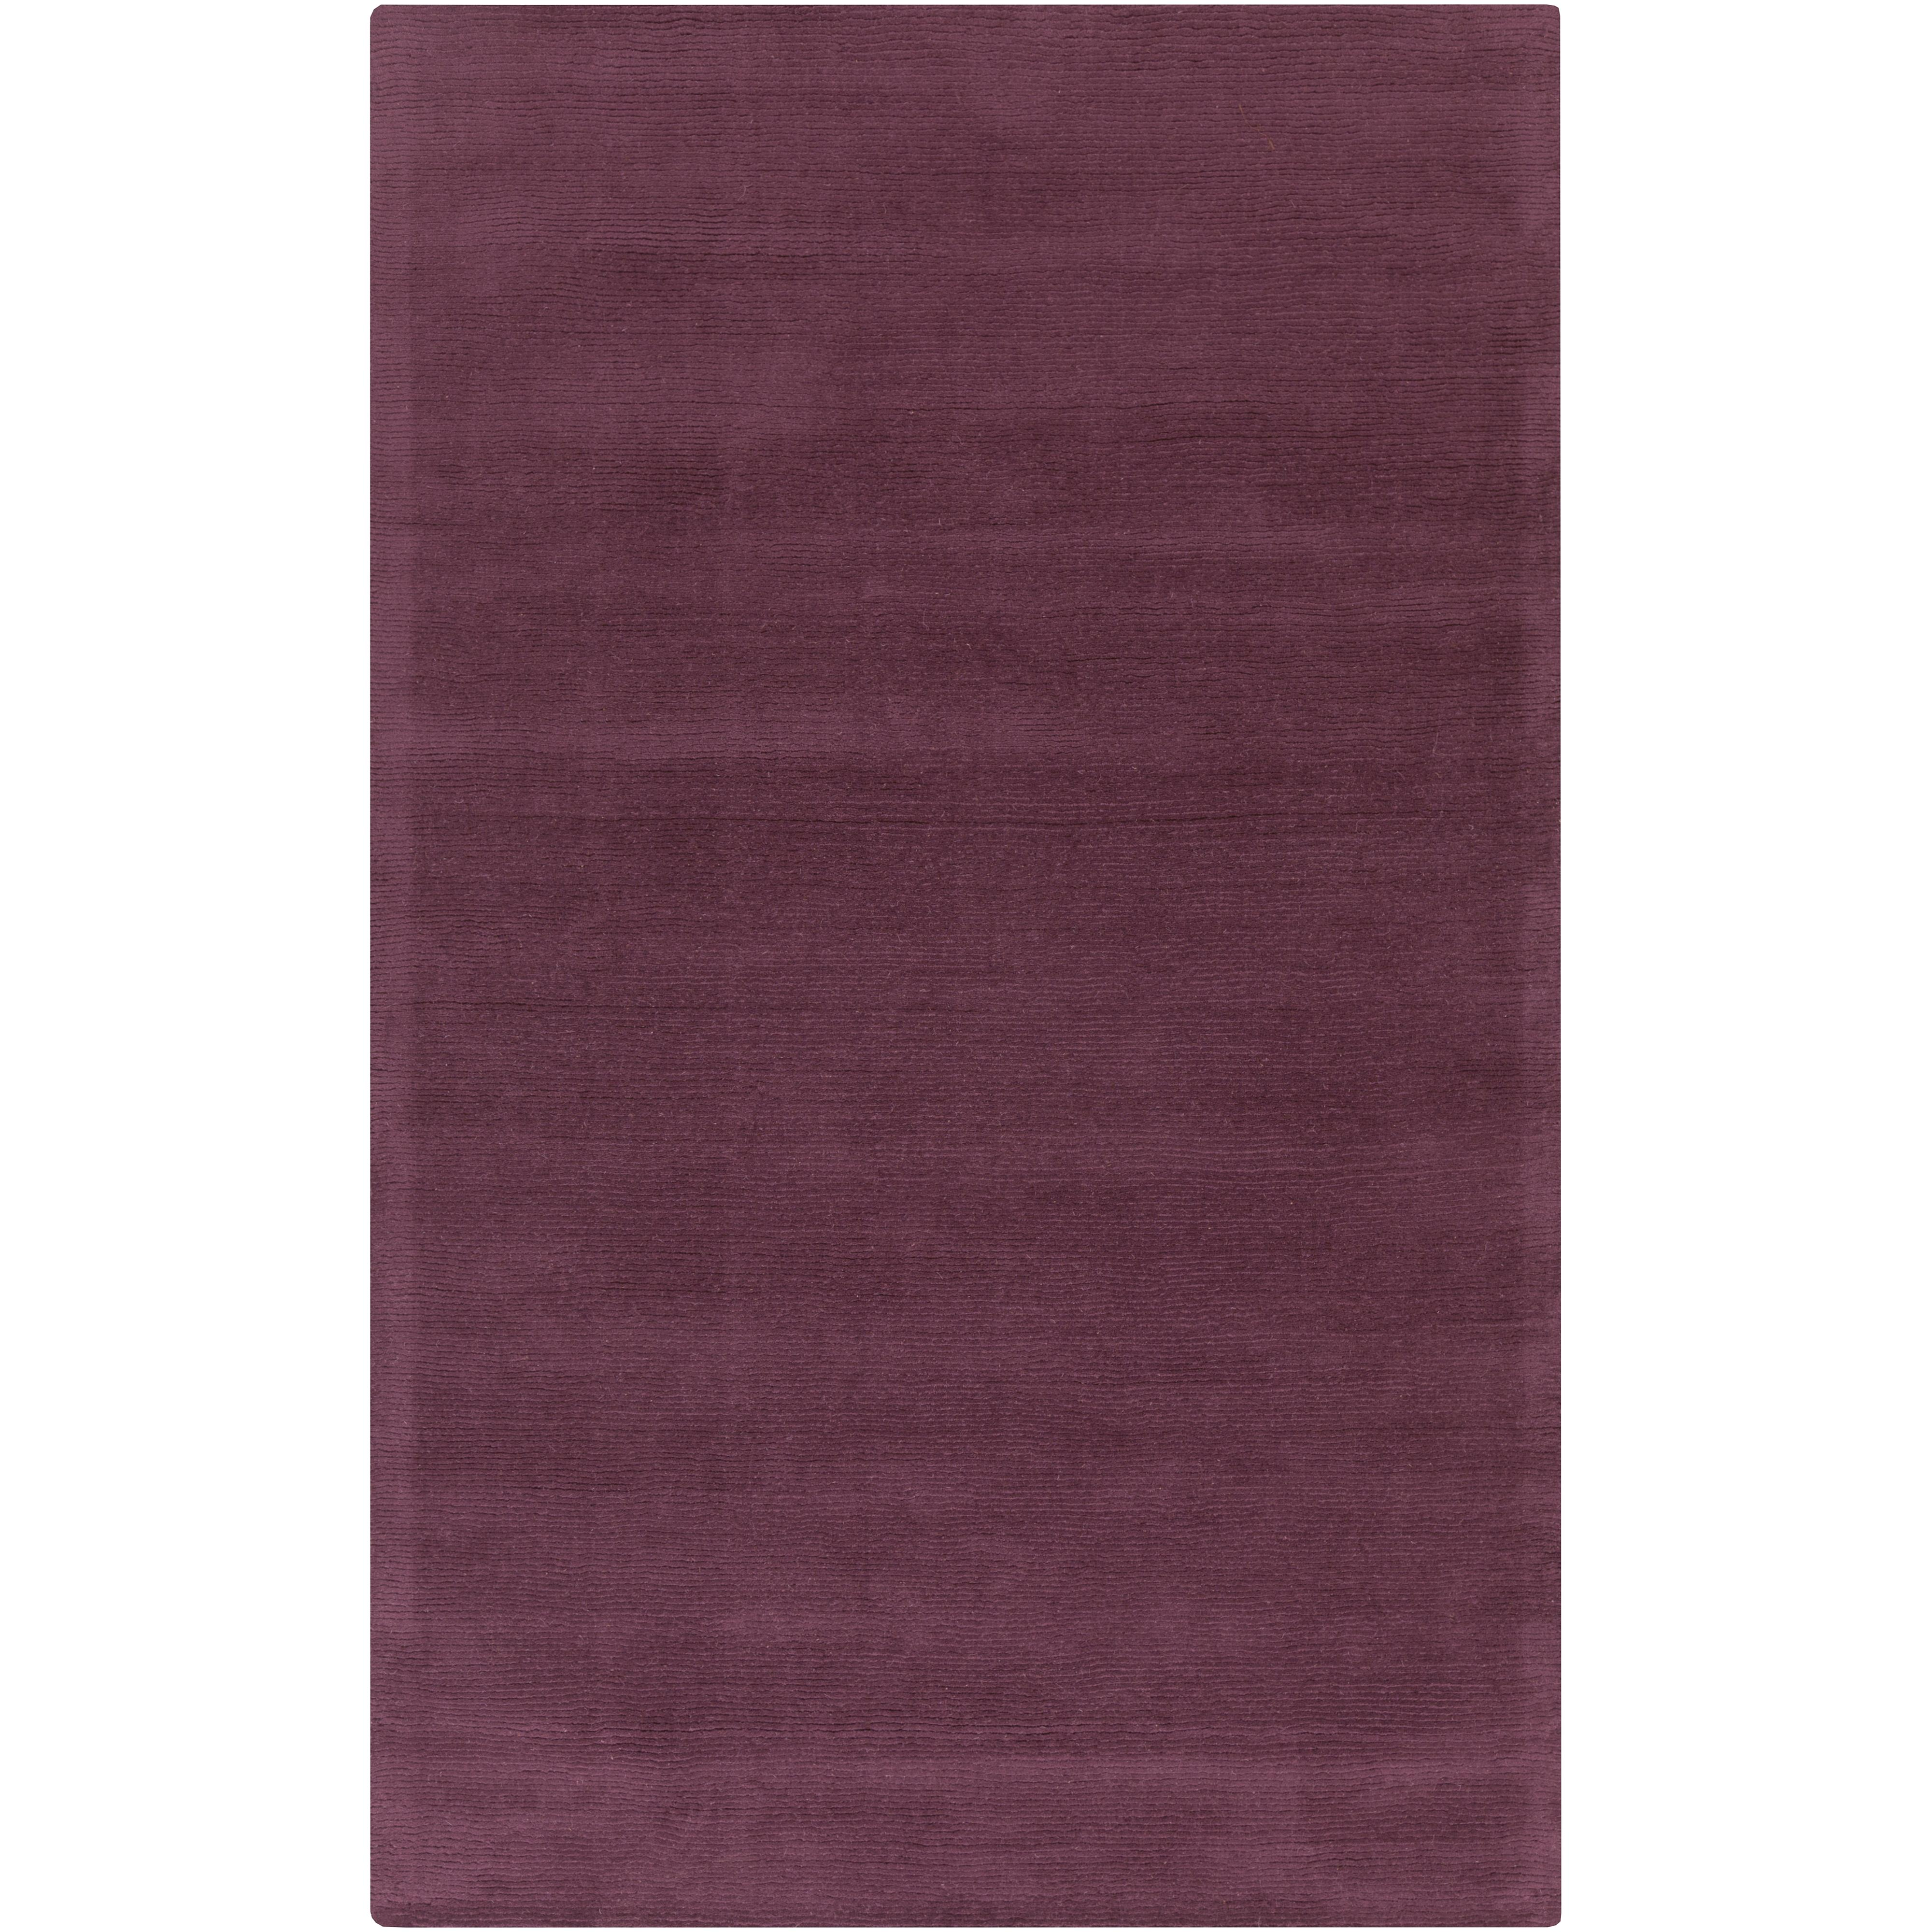 Surya Rugs Mystique 8' x 11' - Item Number: M5326-811